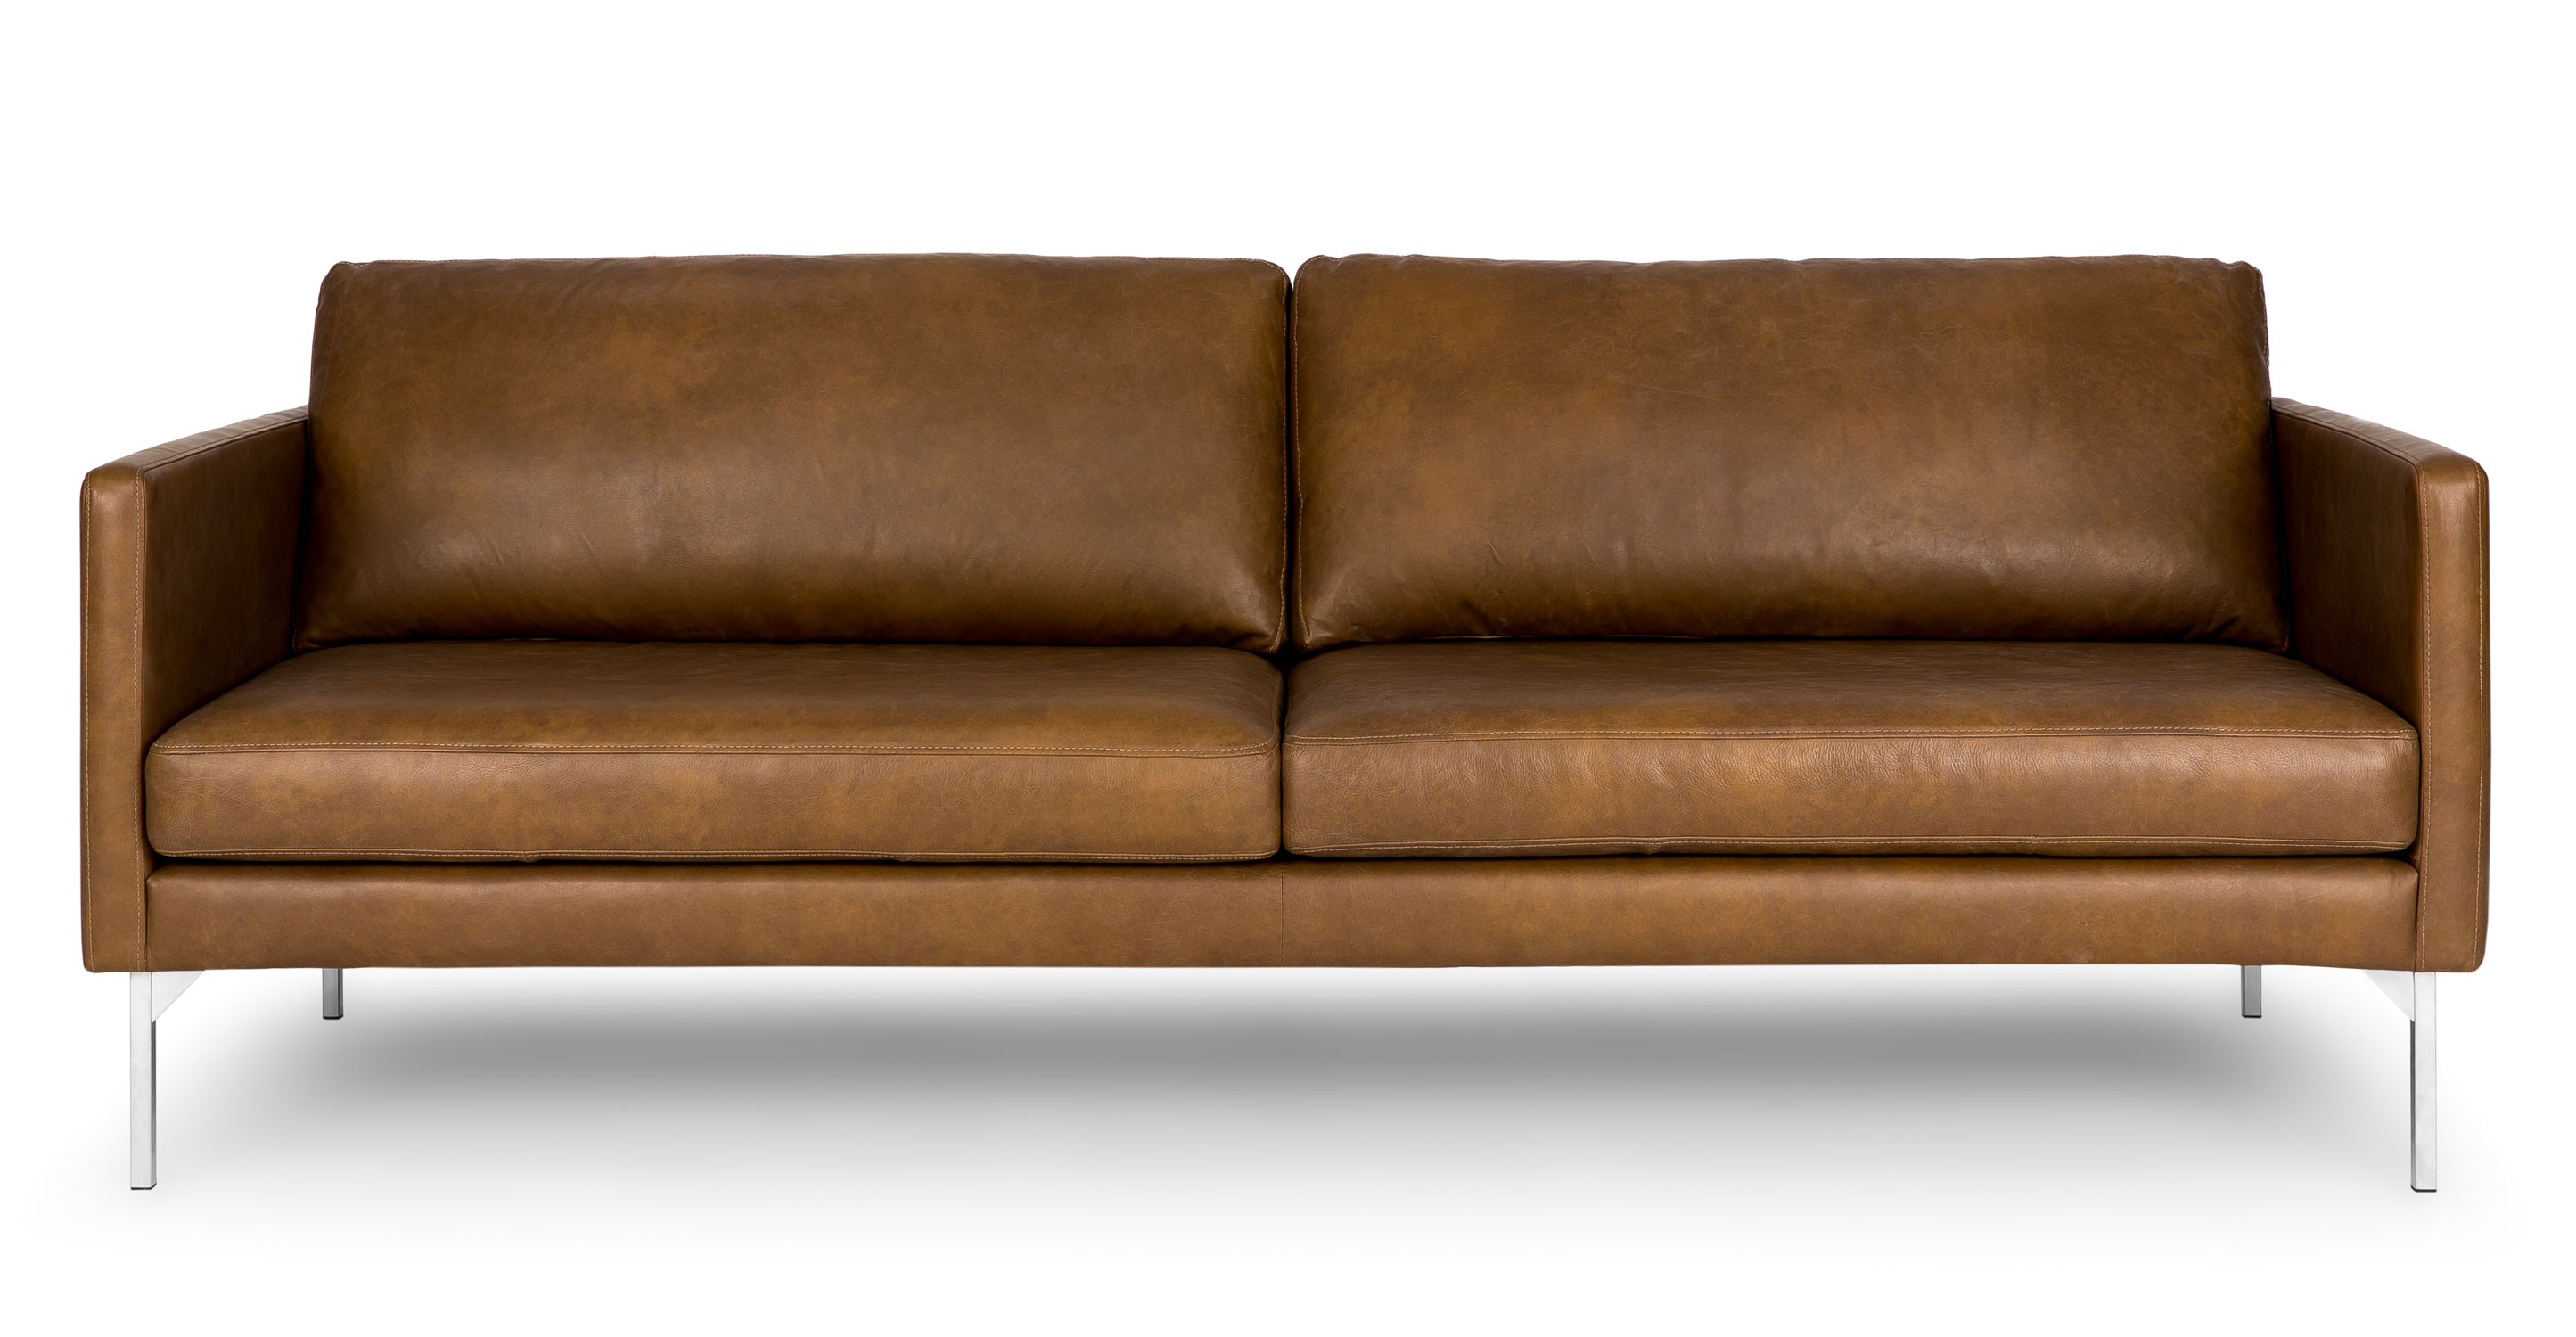 Echo Oxford Tan Sofa Sofas Article Modern Mid